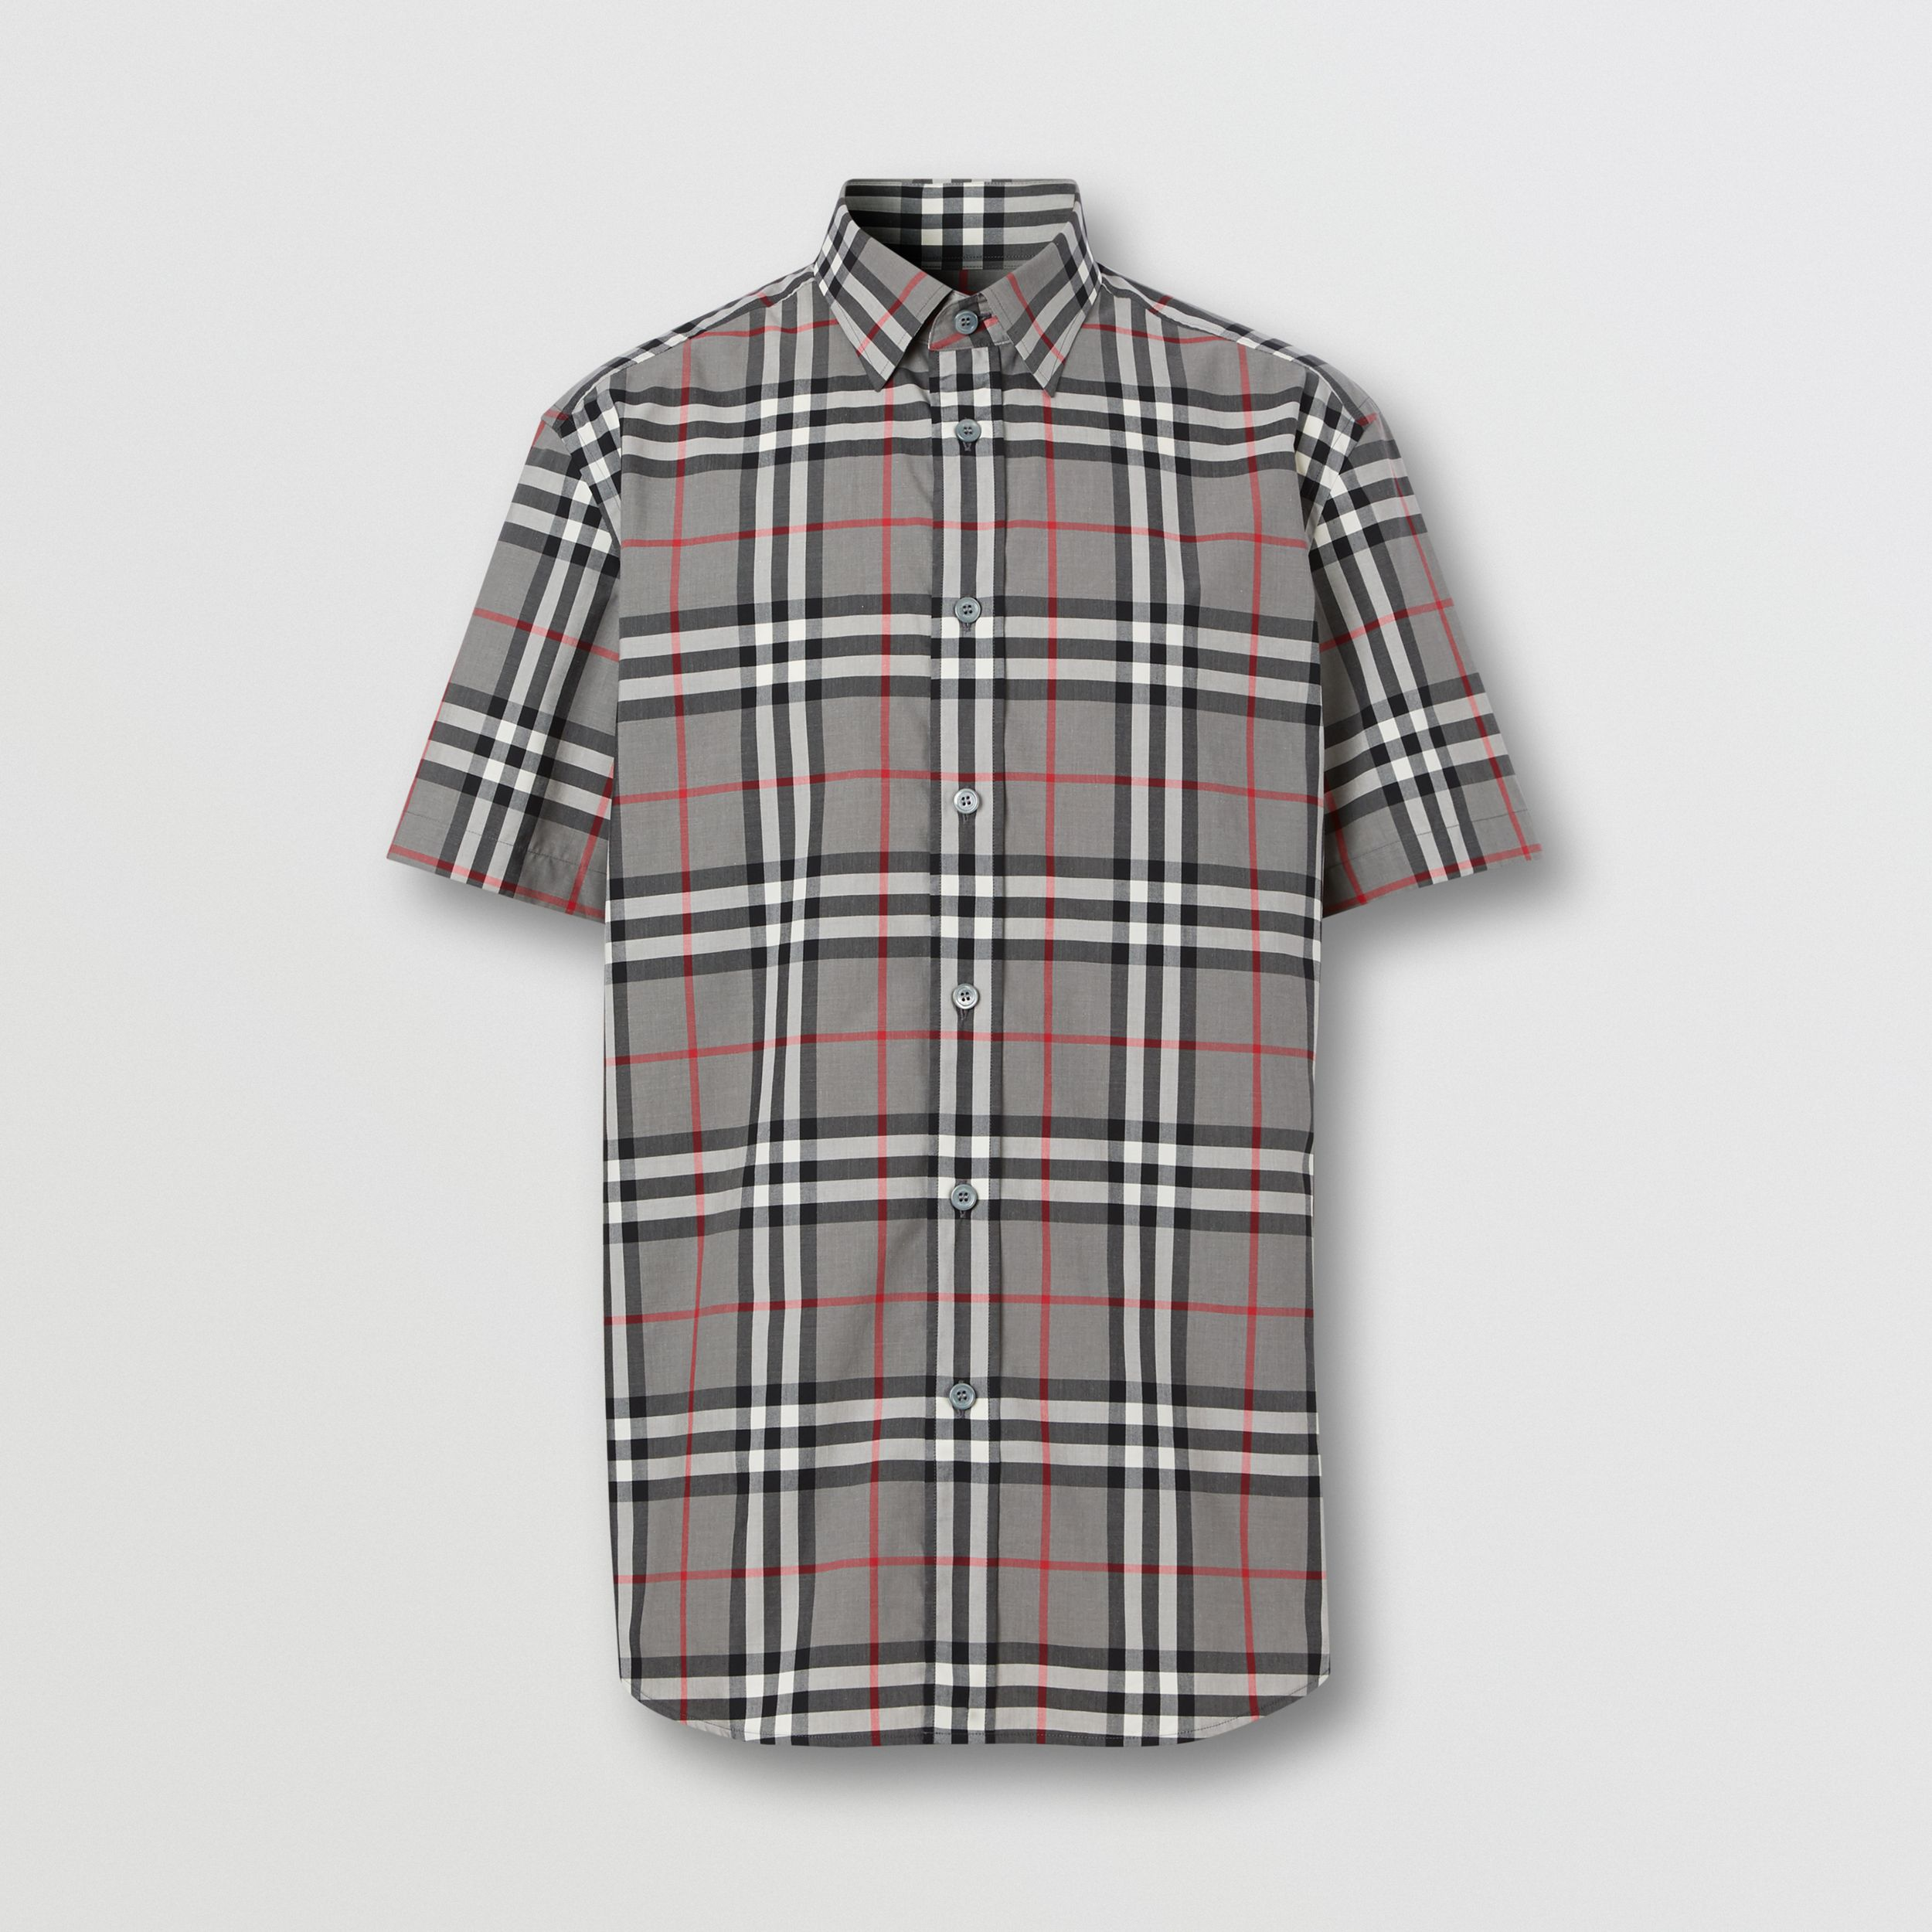 Short-sleeve Check Cotton Poplin Shirt in Storm Grey Melange - Men | Burberry Hong Kong S.A.R. - 4